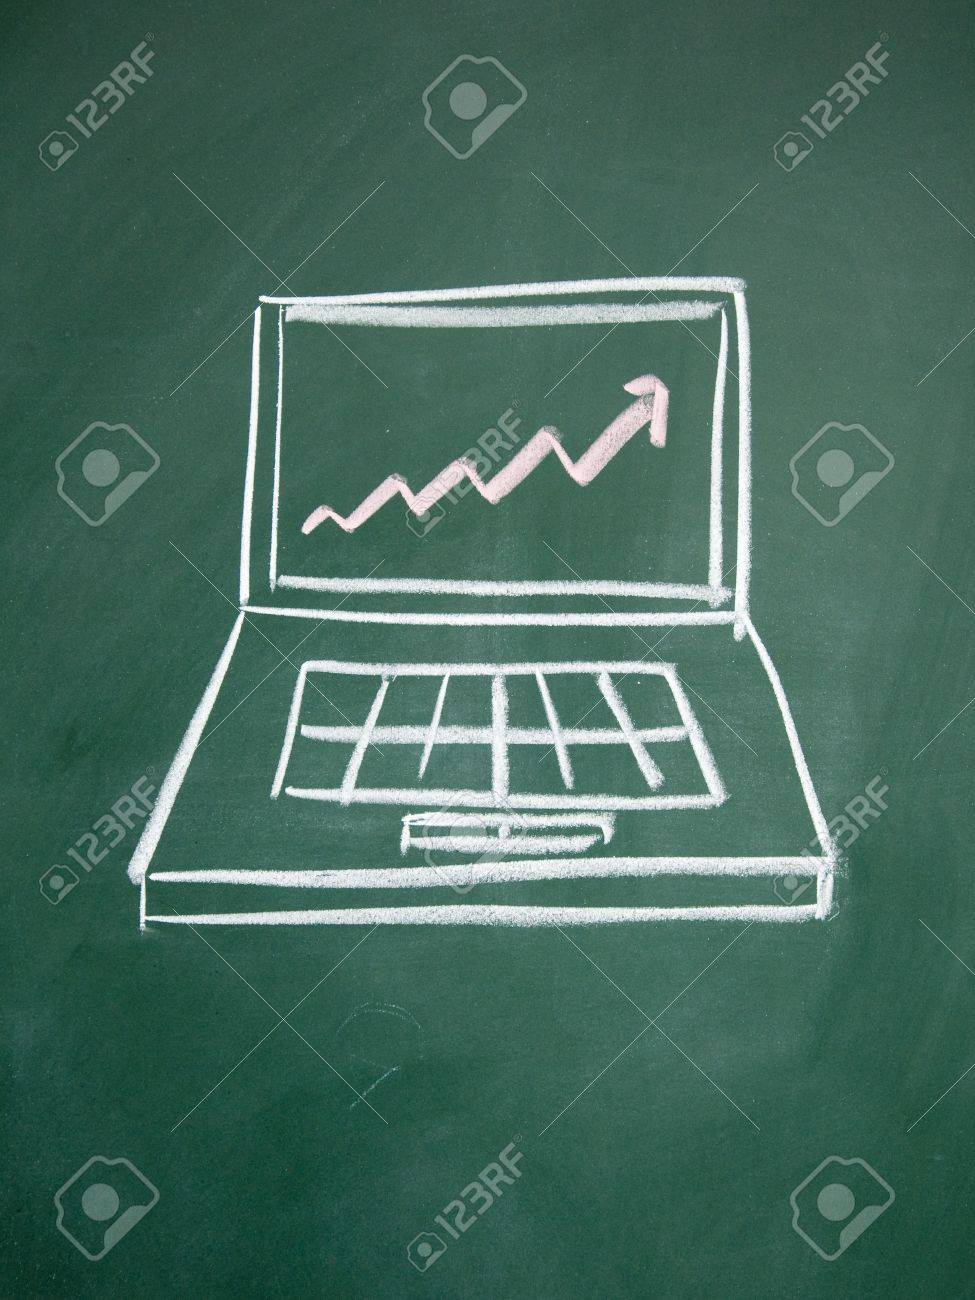 Notebook computers and chart Stock Photo - 12953642